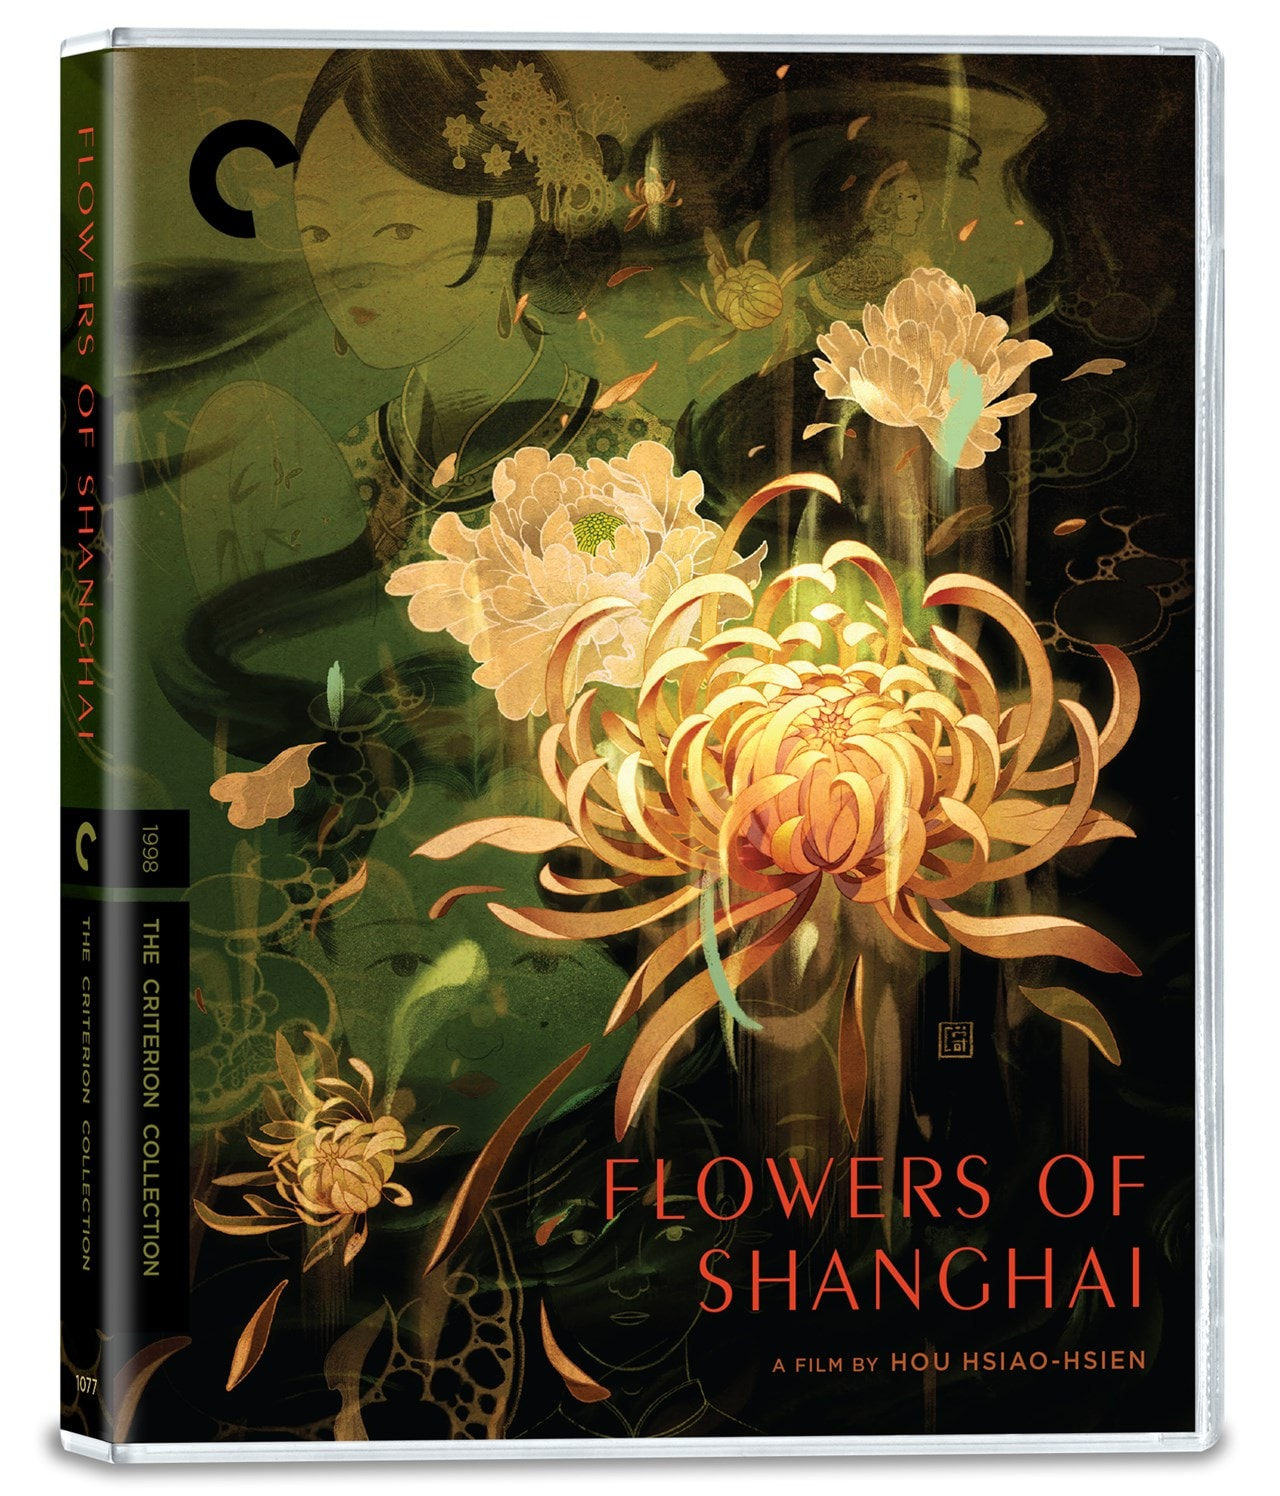 Flowers of Shanghai - The Criterion Collection - 2